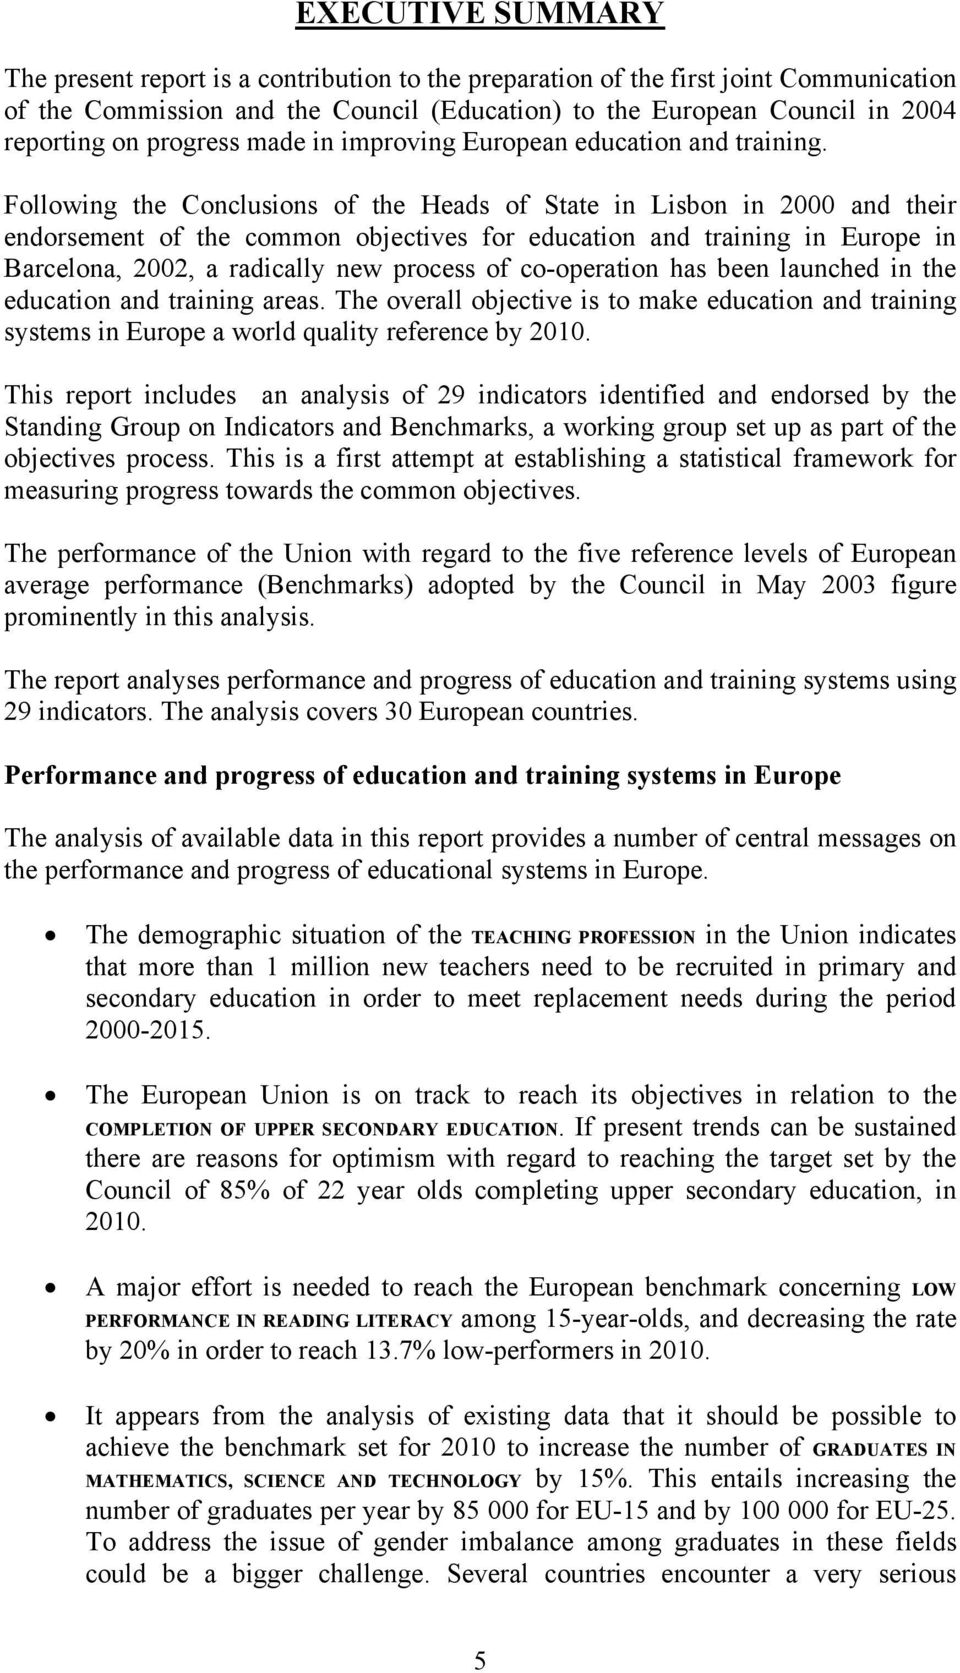 Following the Conclusions of the Heads of State in Lisbon in 2000 and their endorsement of the common objectives for education and training in Europe in Barcelona, 2002, a radically new process of